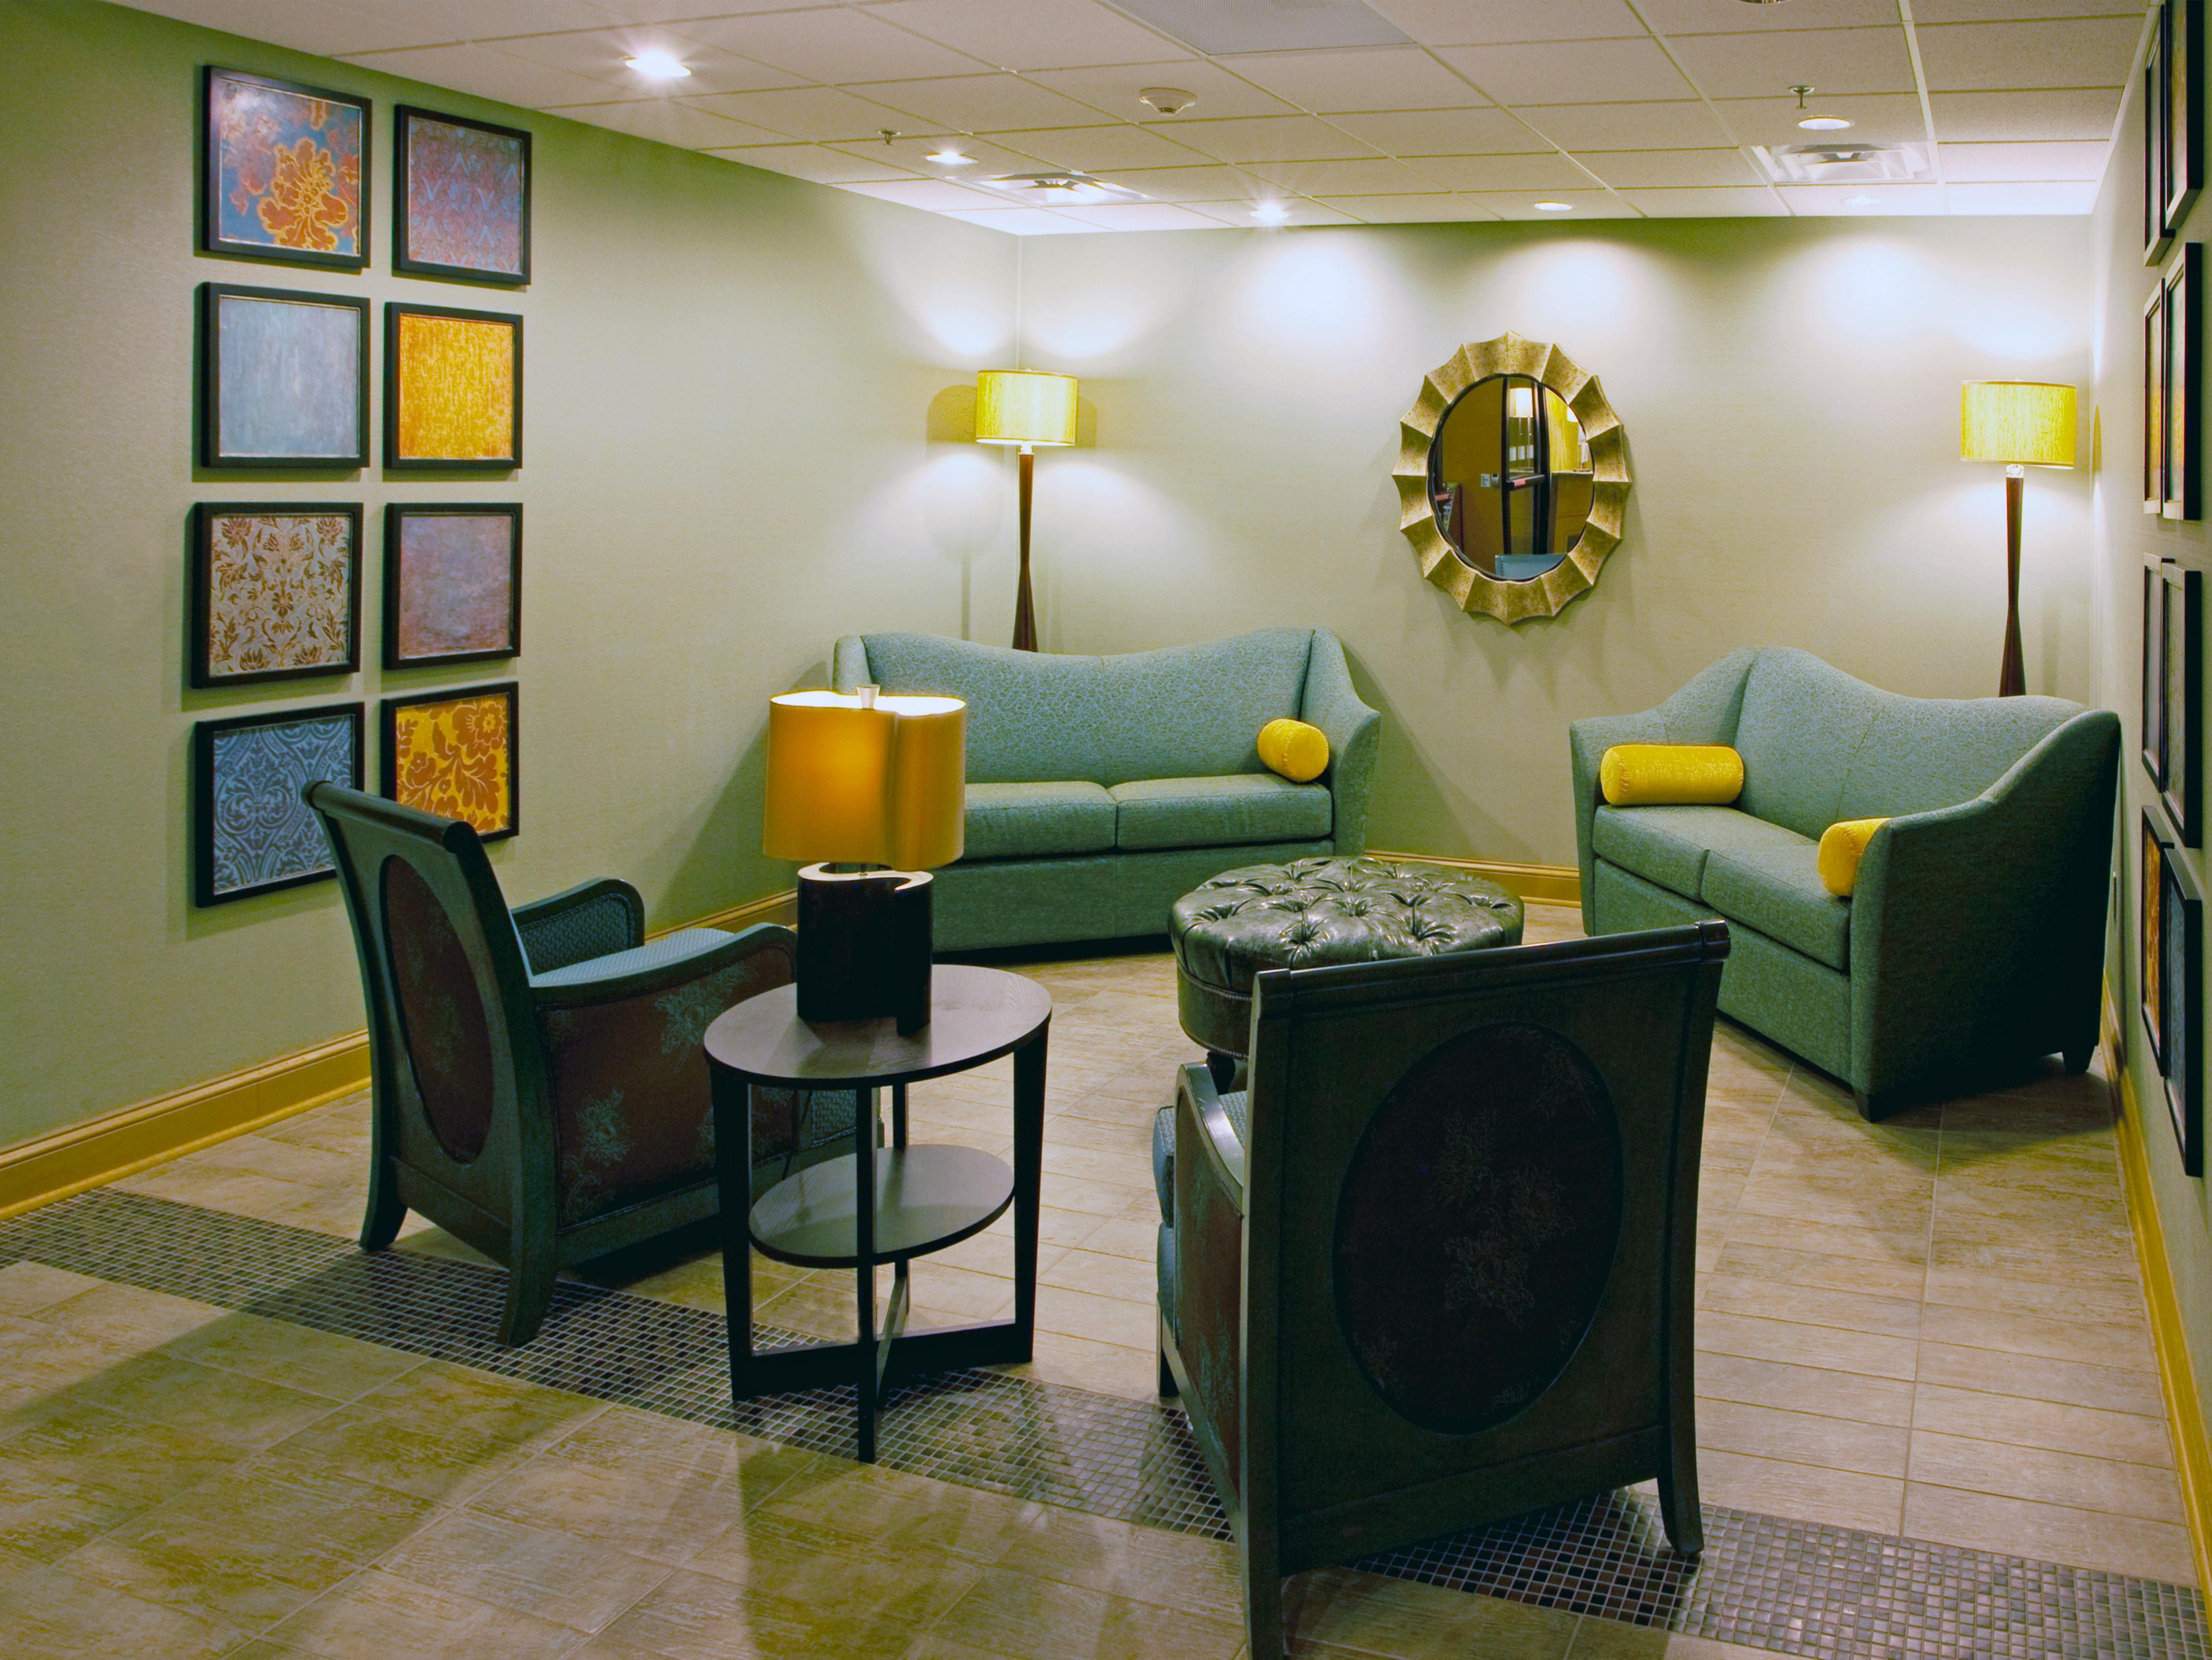 Our Lobby Lounge has a bright new contemporary feel